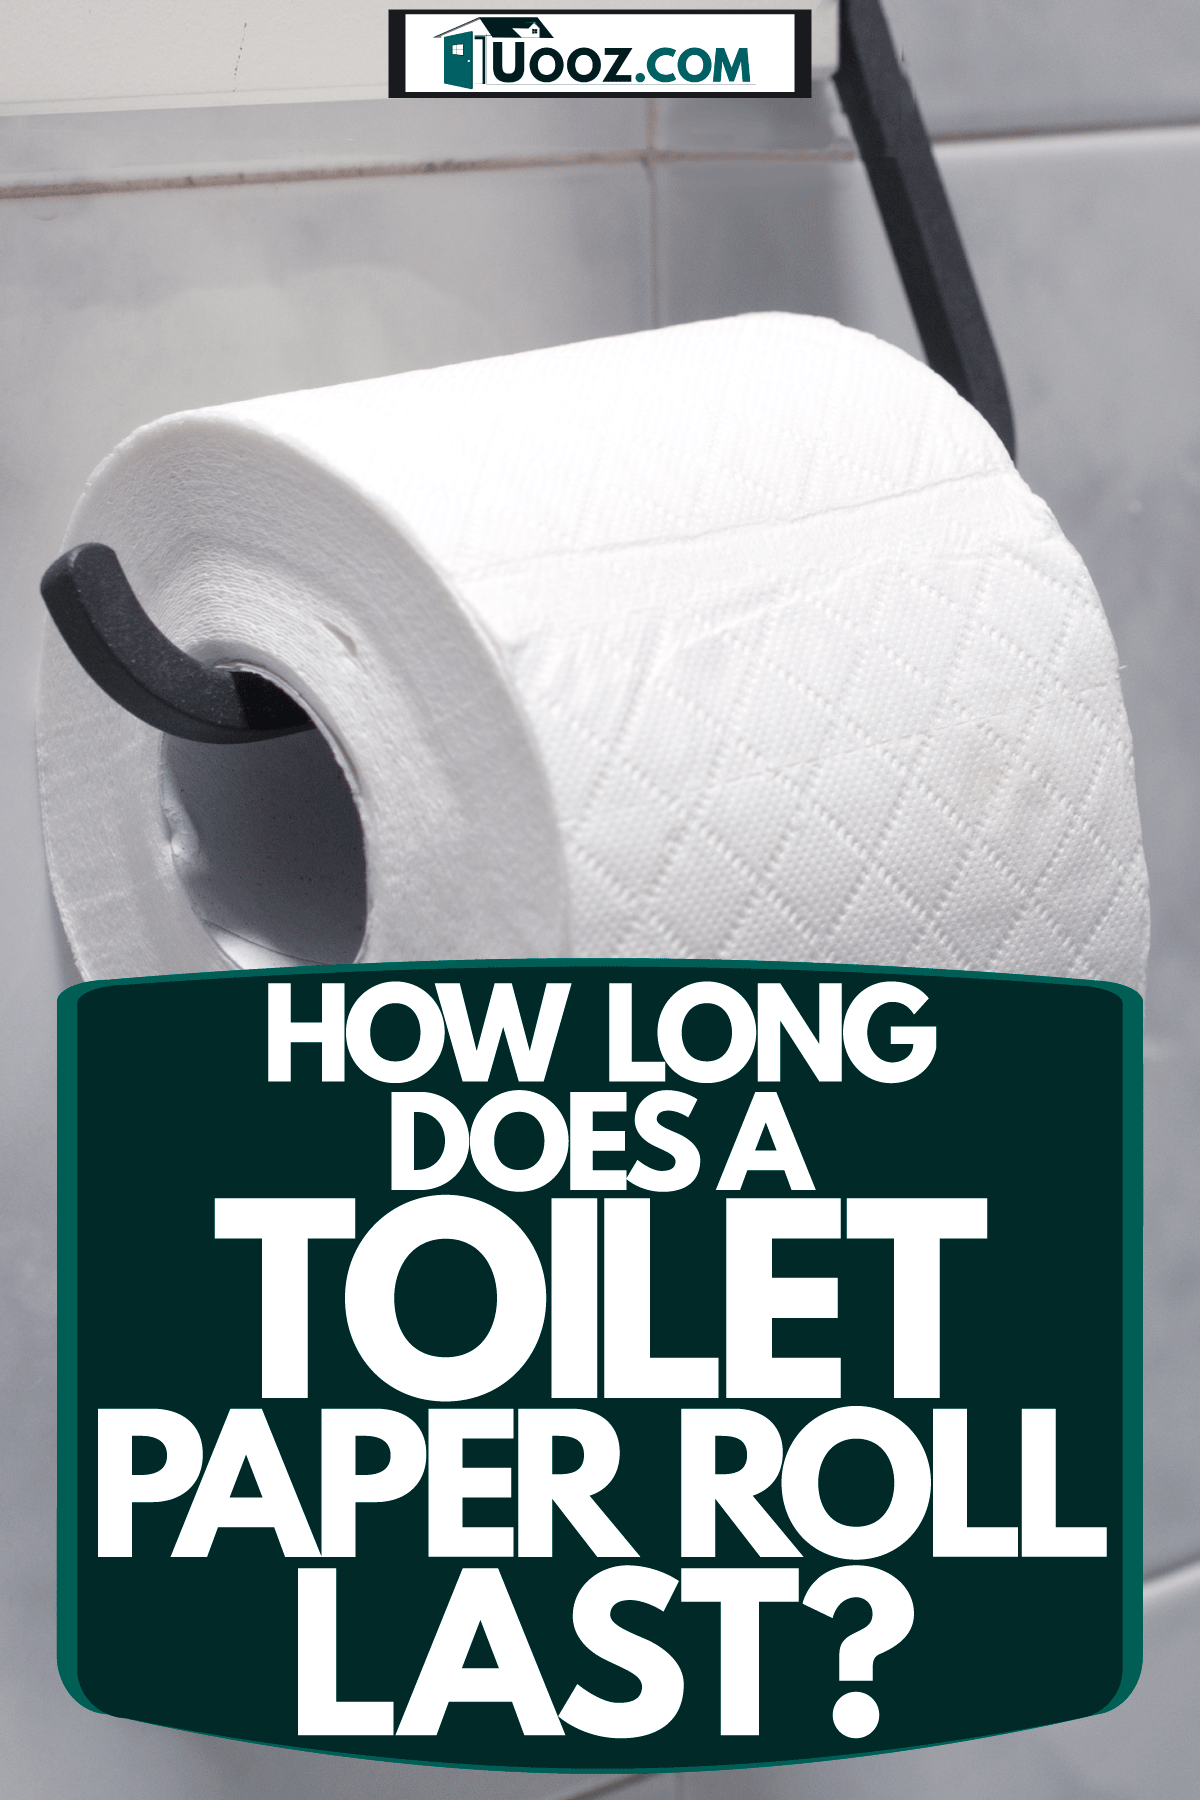 A new and clean toilet paper inserted on the toilet rack, How Long Does A Toilet Paper Roll Last?